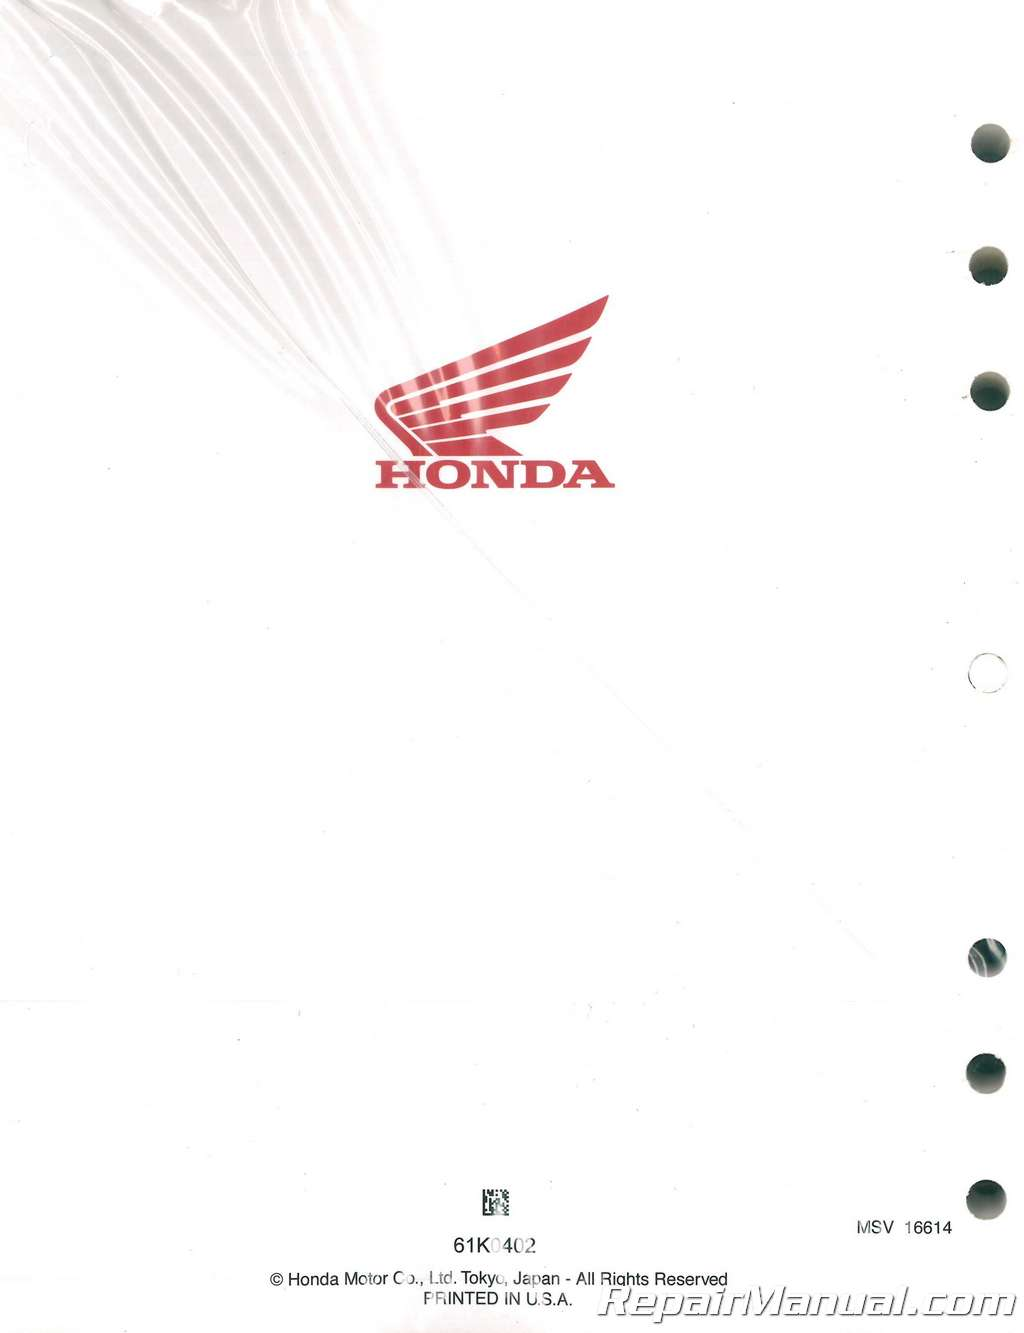 2014-2018 Honda NSS300 A Forza Scooter Service Manual